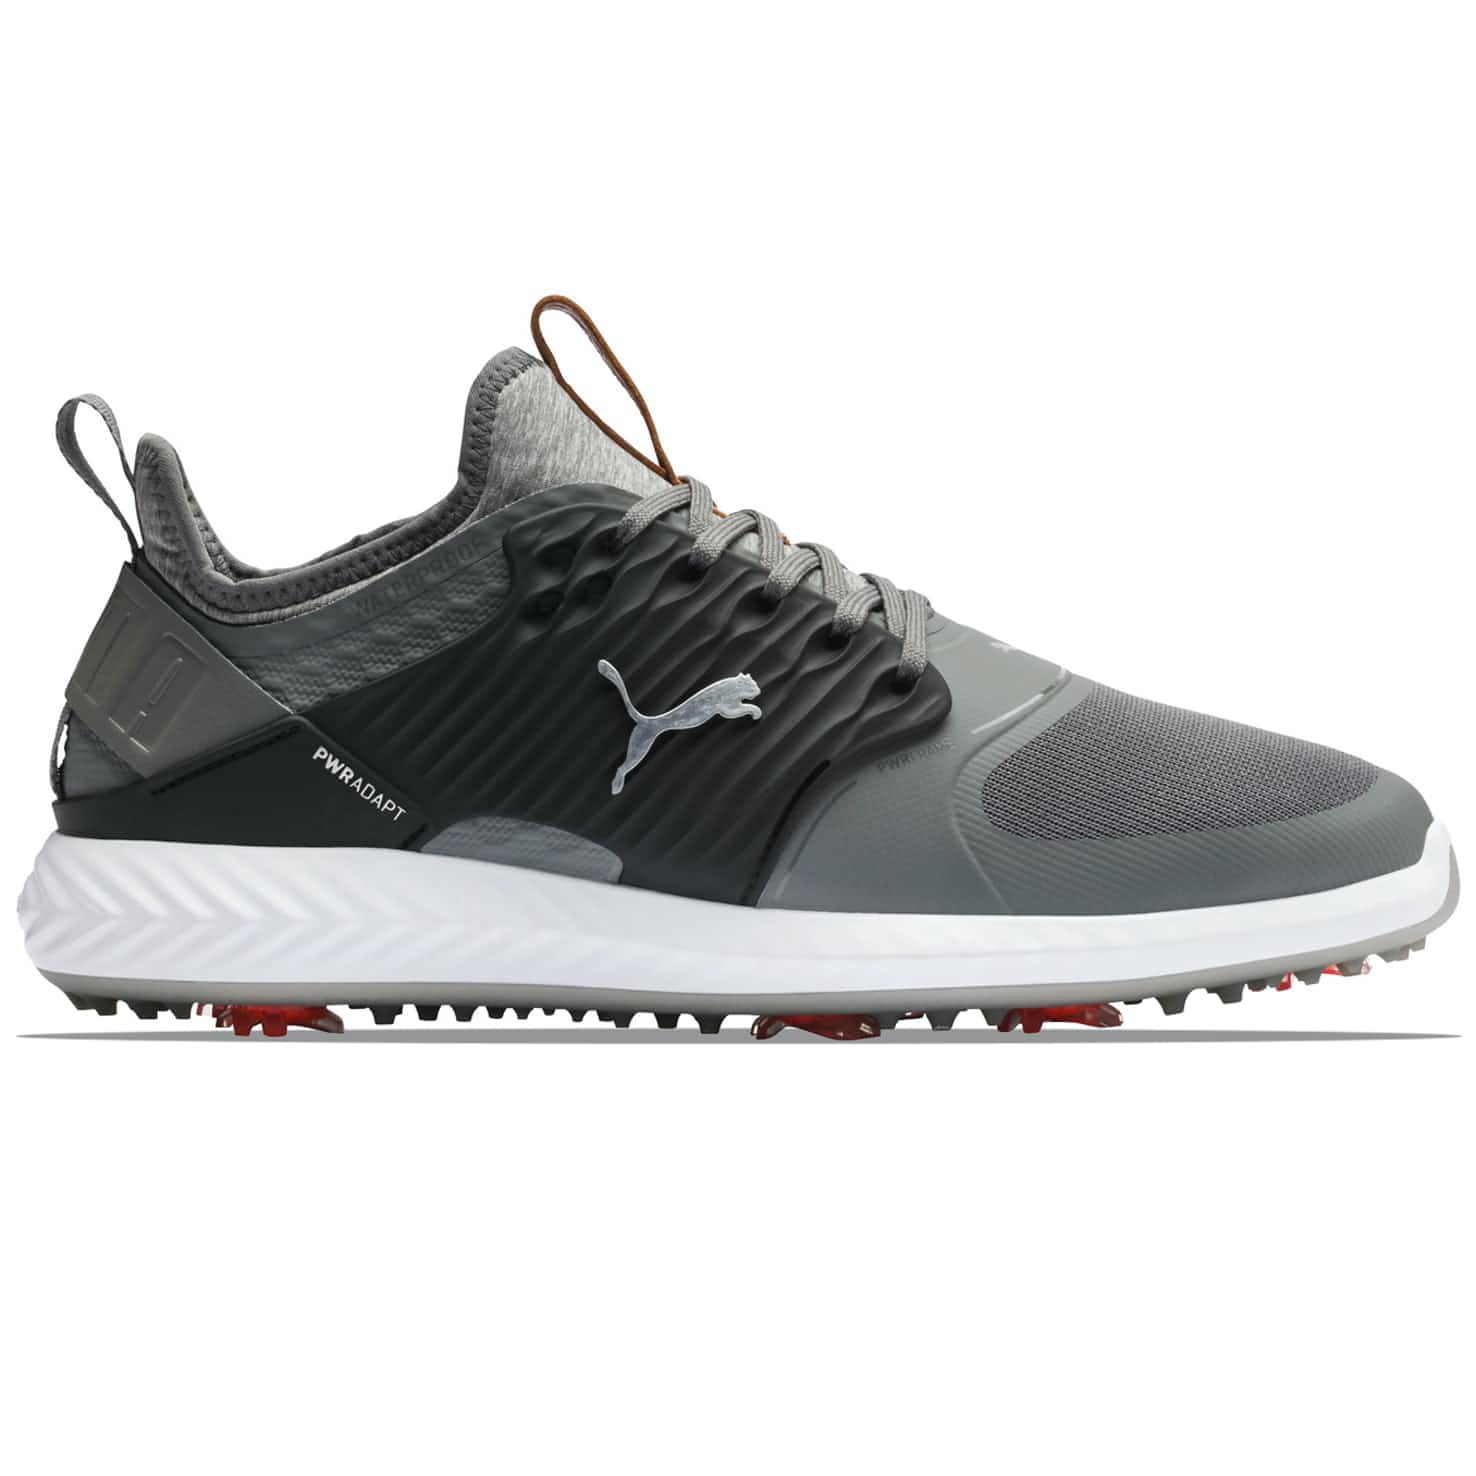 Ignite PWRADAPT Caged Quiet Shade/Silver/Black - SS20